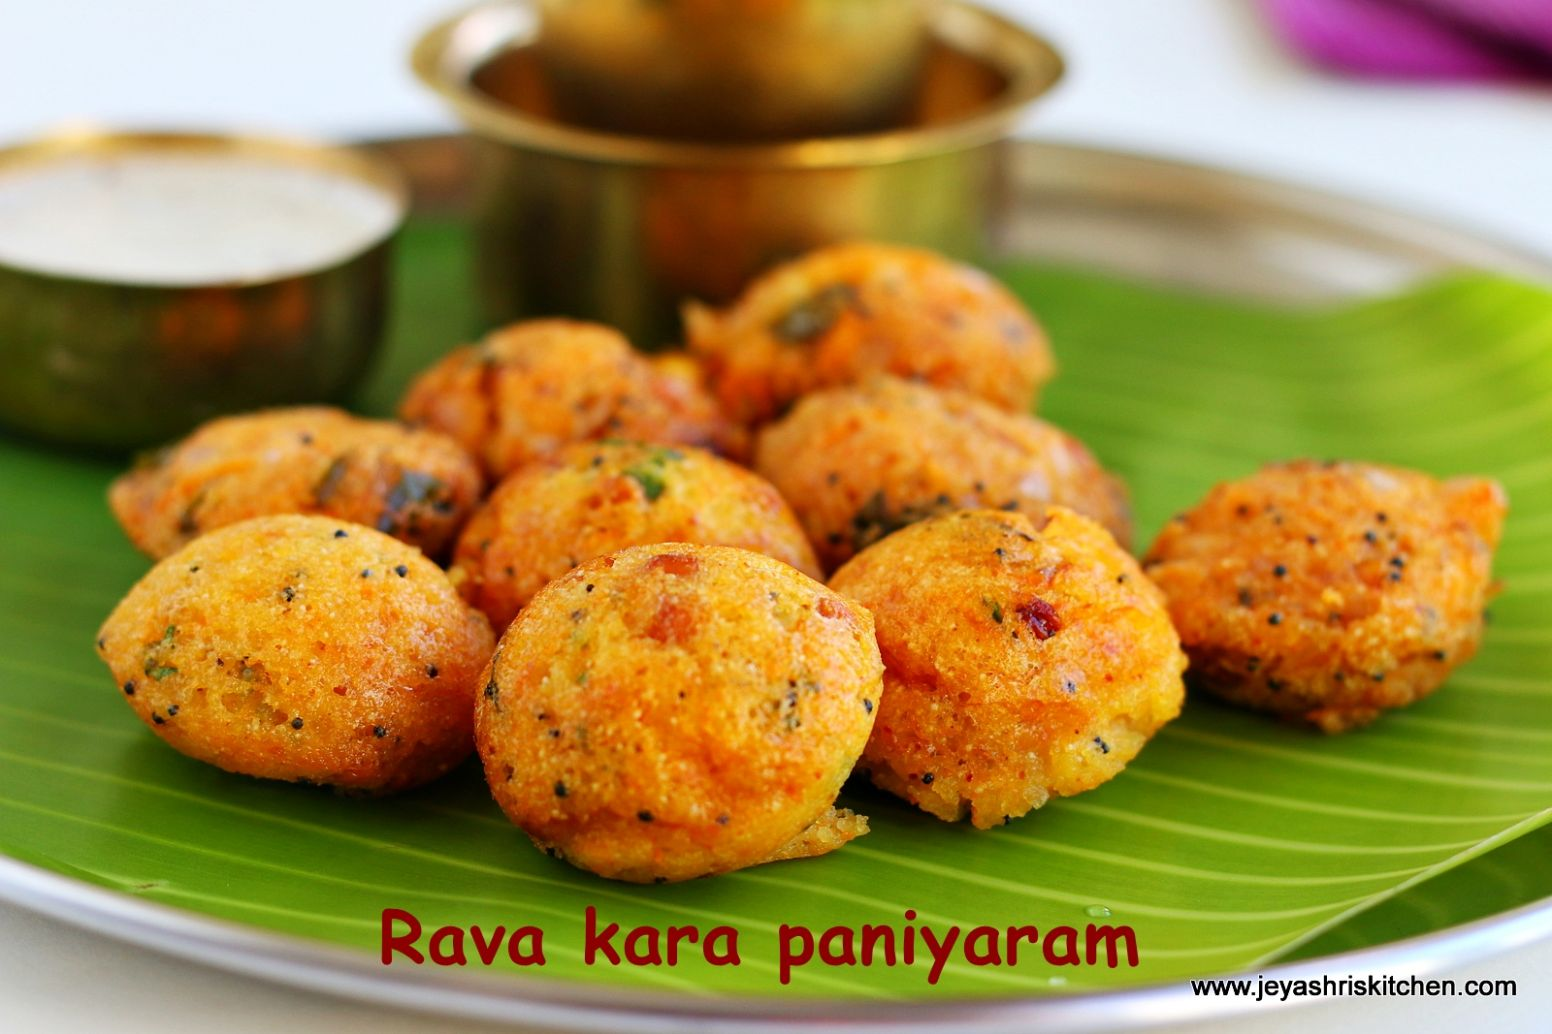 Instant Rava Kara kuzhi Paniyaram | South Indian breakfast recipes ..